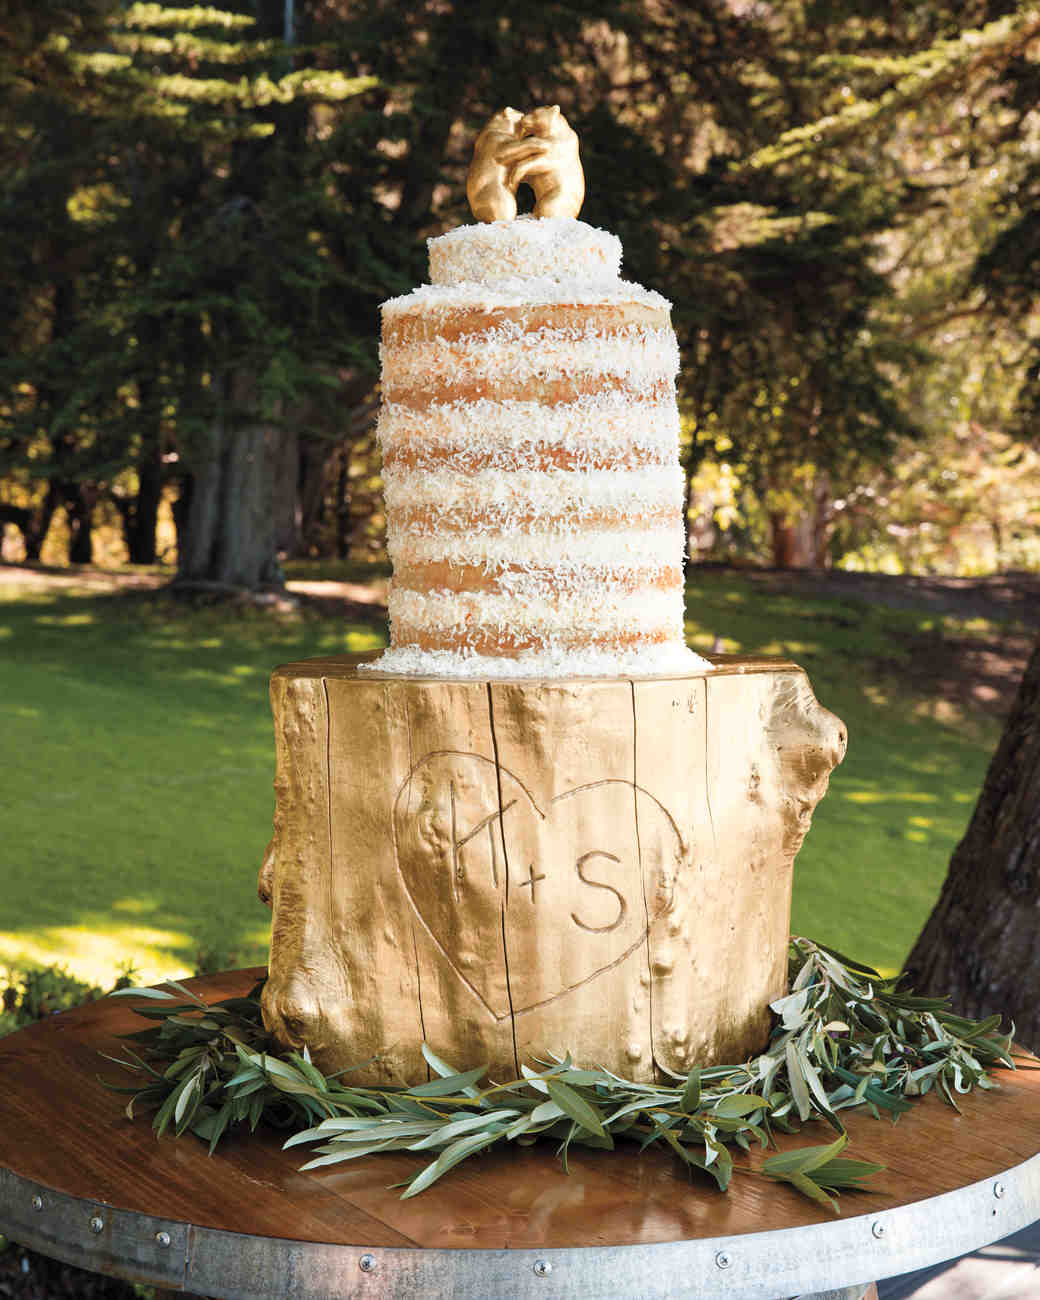 Naked Coconut Cake with Dancing Bear and Gold Leaf Toppers